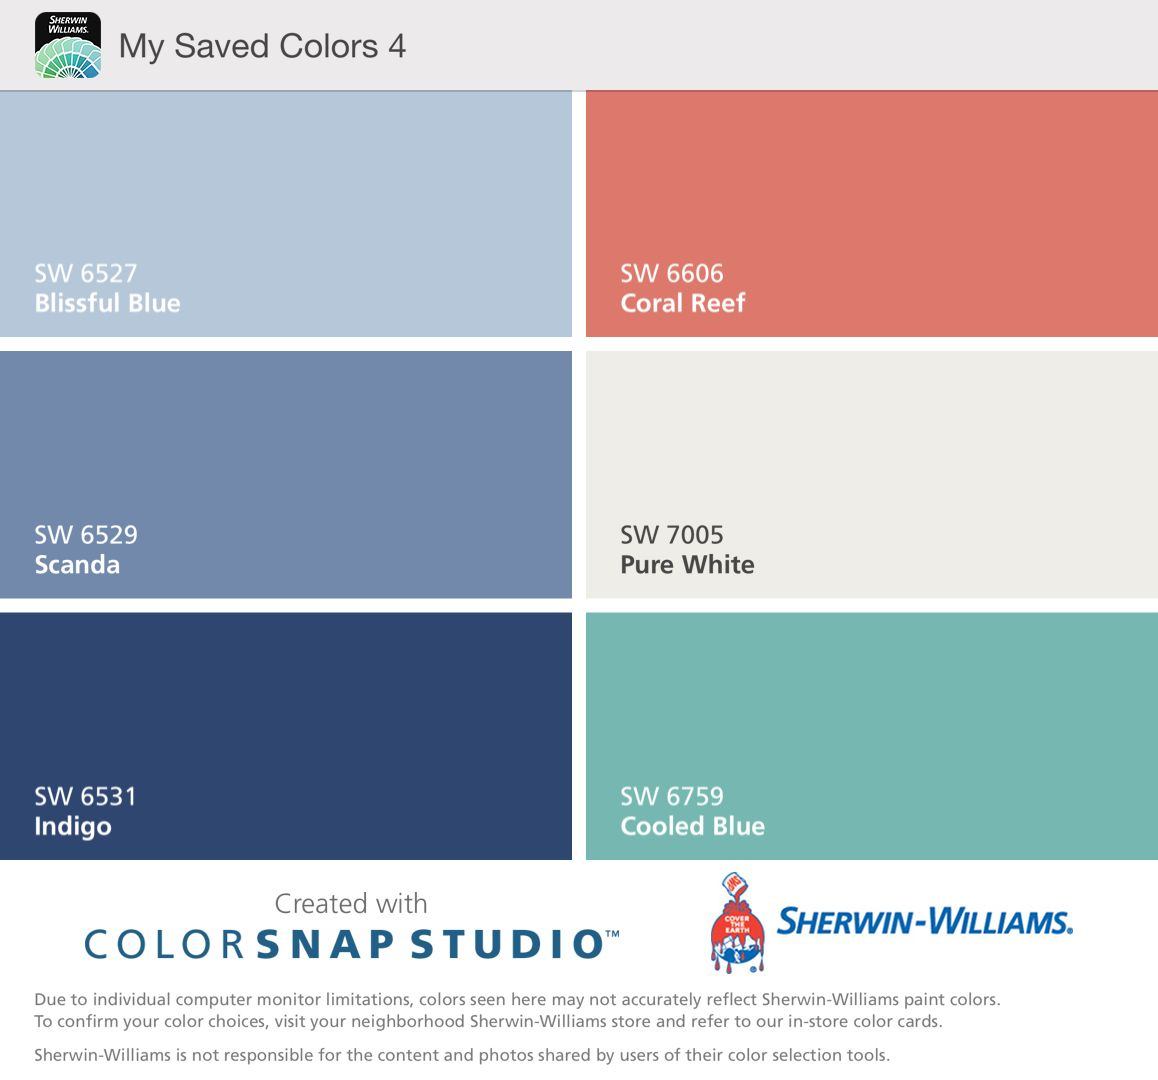 Coral Reef Paint Color Exterior Colors Blissful Blue Upper 2 Floors Scanda Ground Level